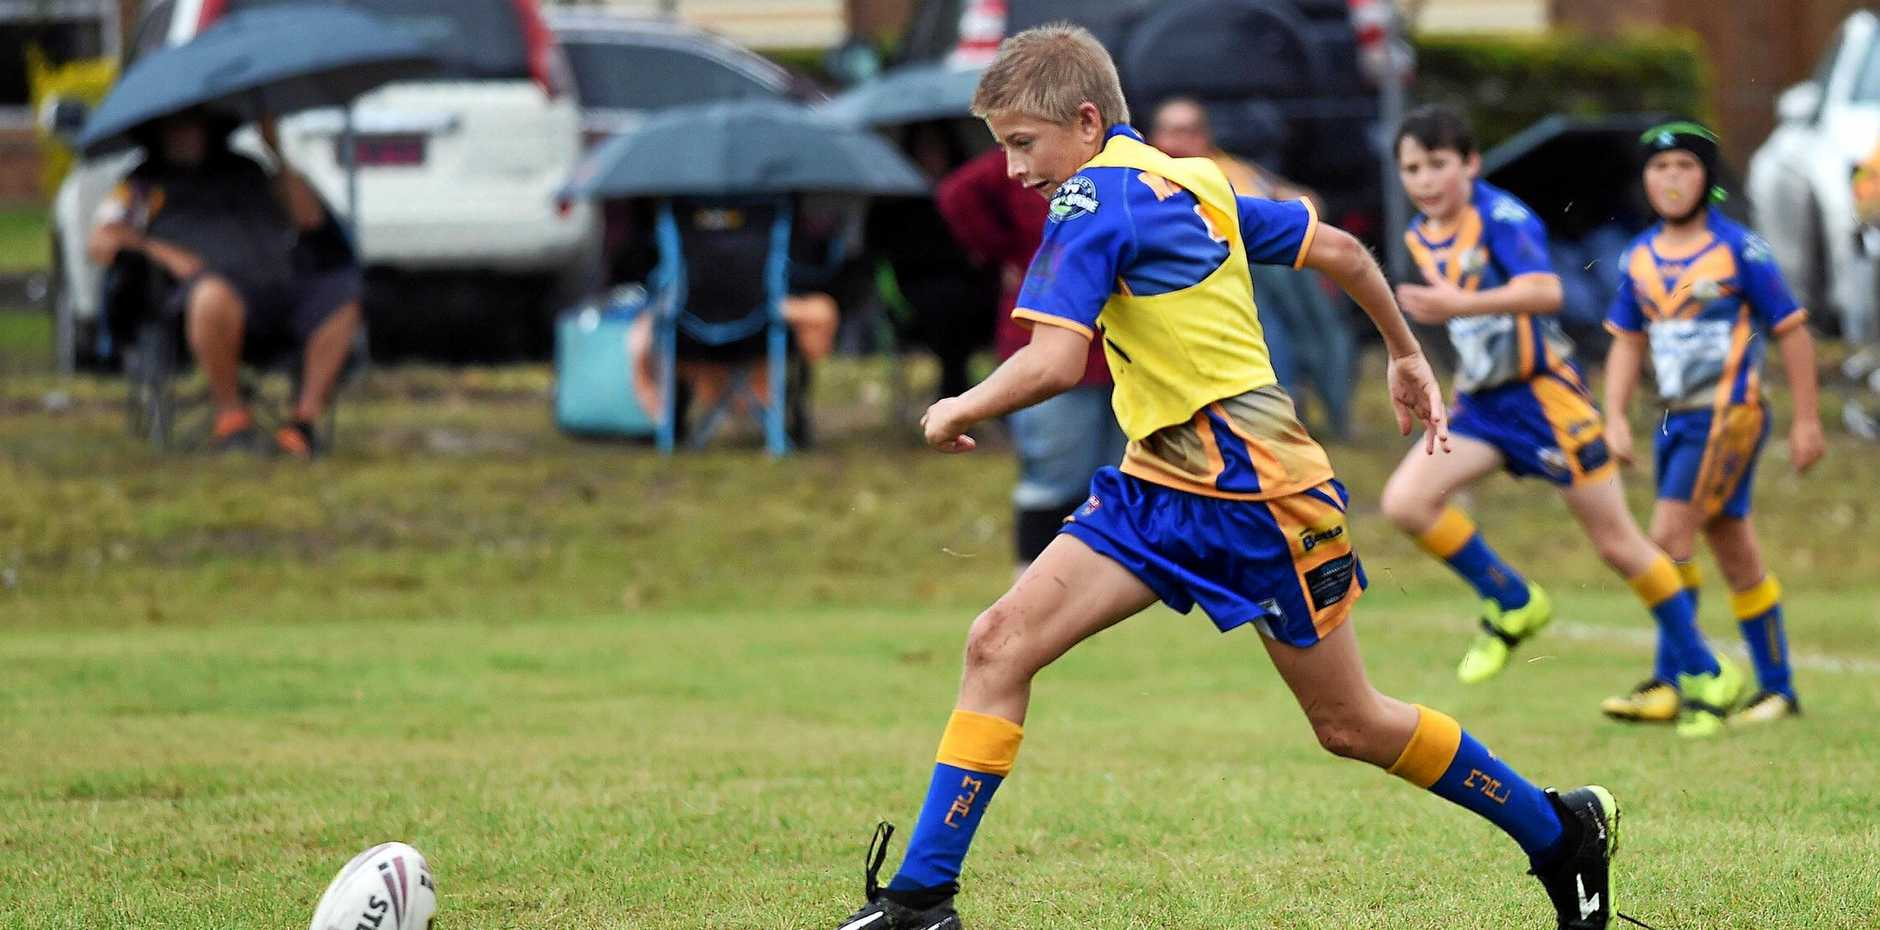 Junior Rugby League - u12 Murgon Mustangs (Blue) v Hervey Bay Red - Chase Kenday grubbers the ball in to space.